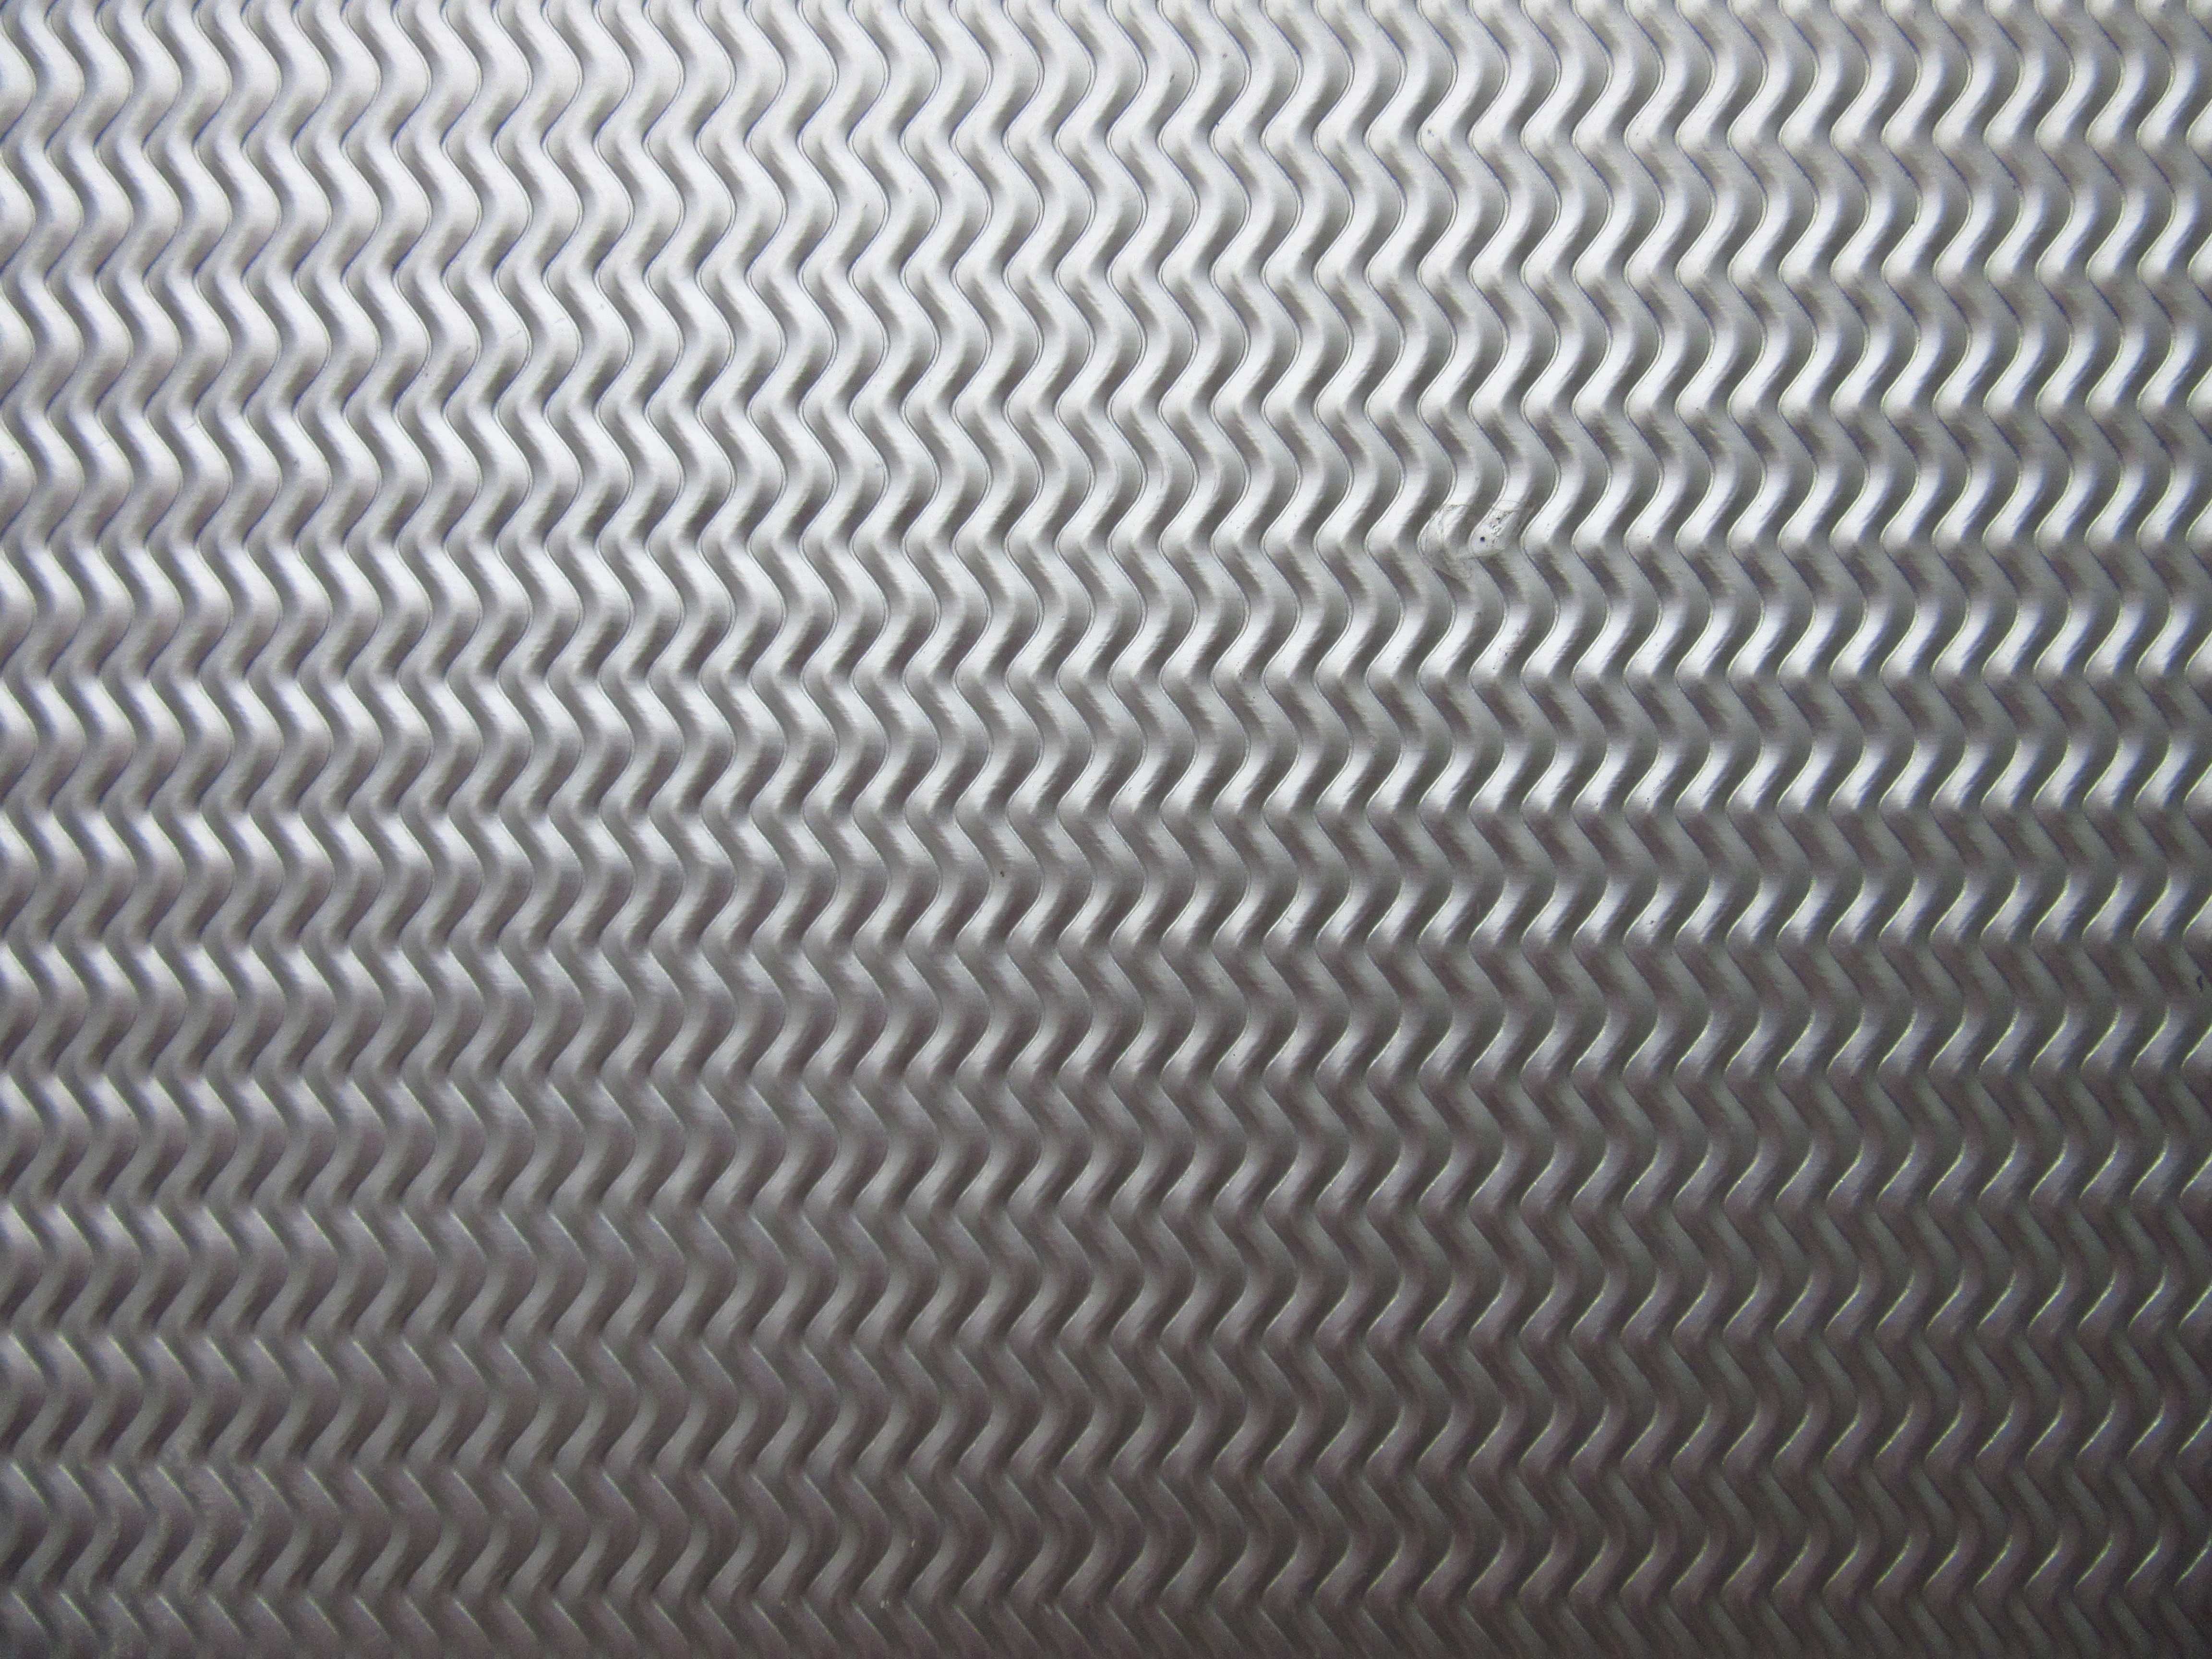 Sheet rip shiny metal embossed grey color background free